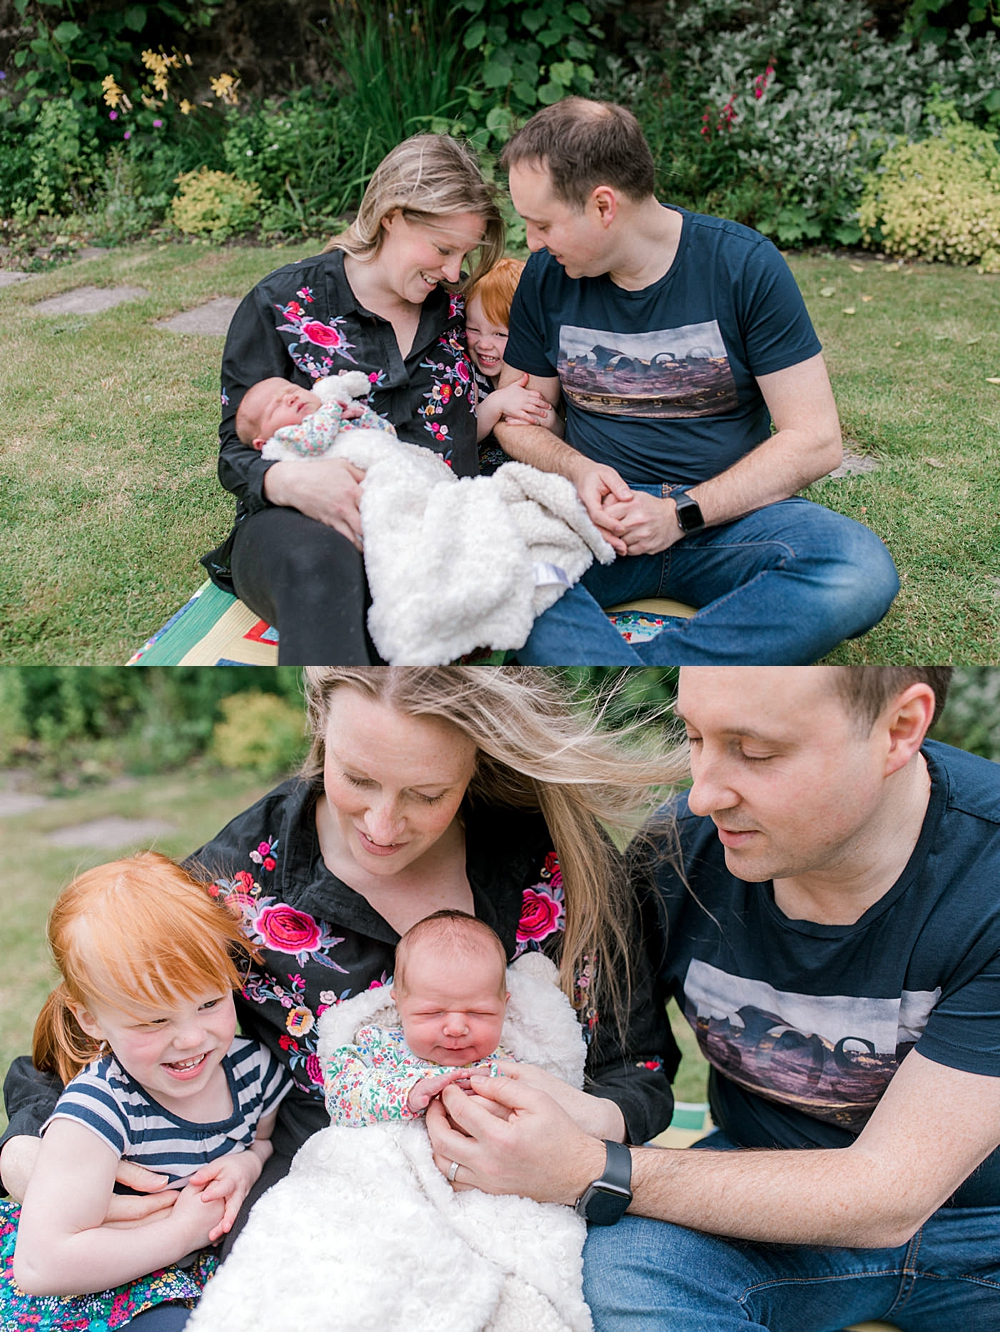 Family photographers Glasgow,Glasgow newborn photography,The Gibsons,in home family photography Glasgow,lifestyle family photography glasgow,lifestyle newborn photographer Glasgow,